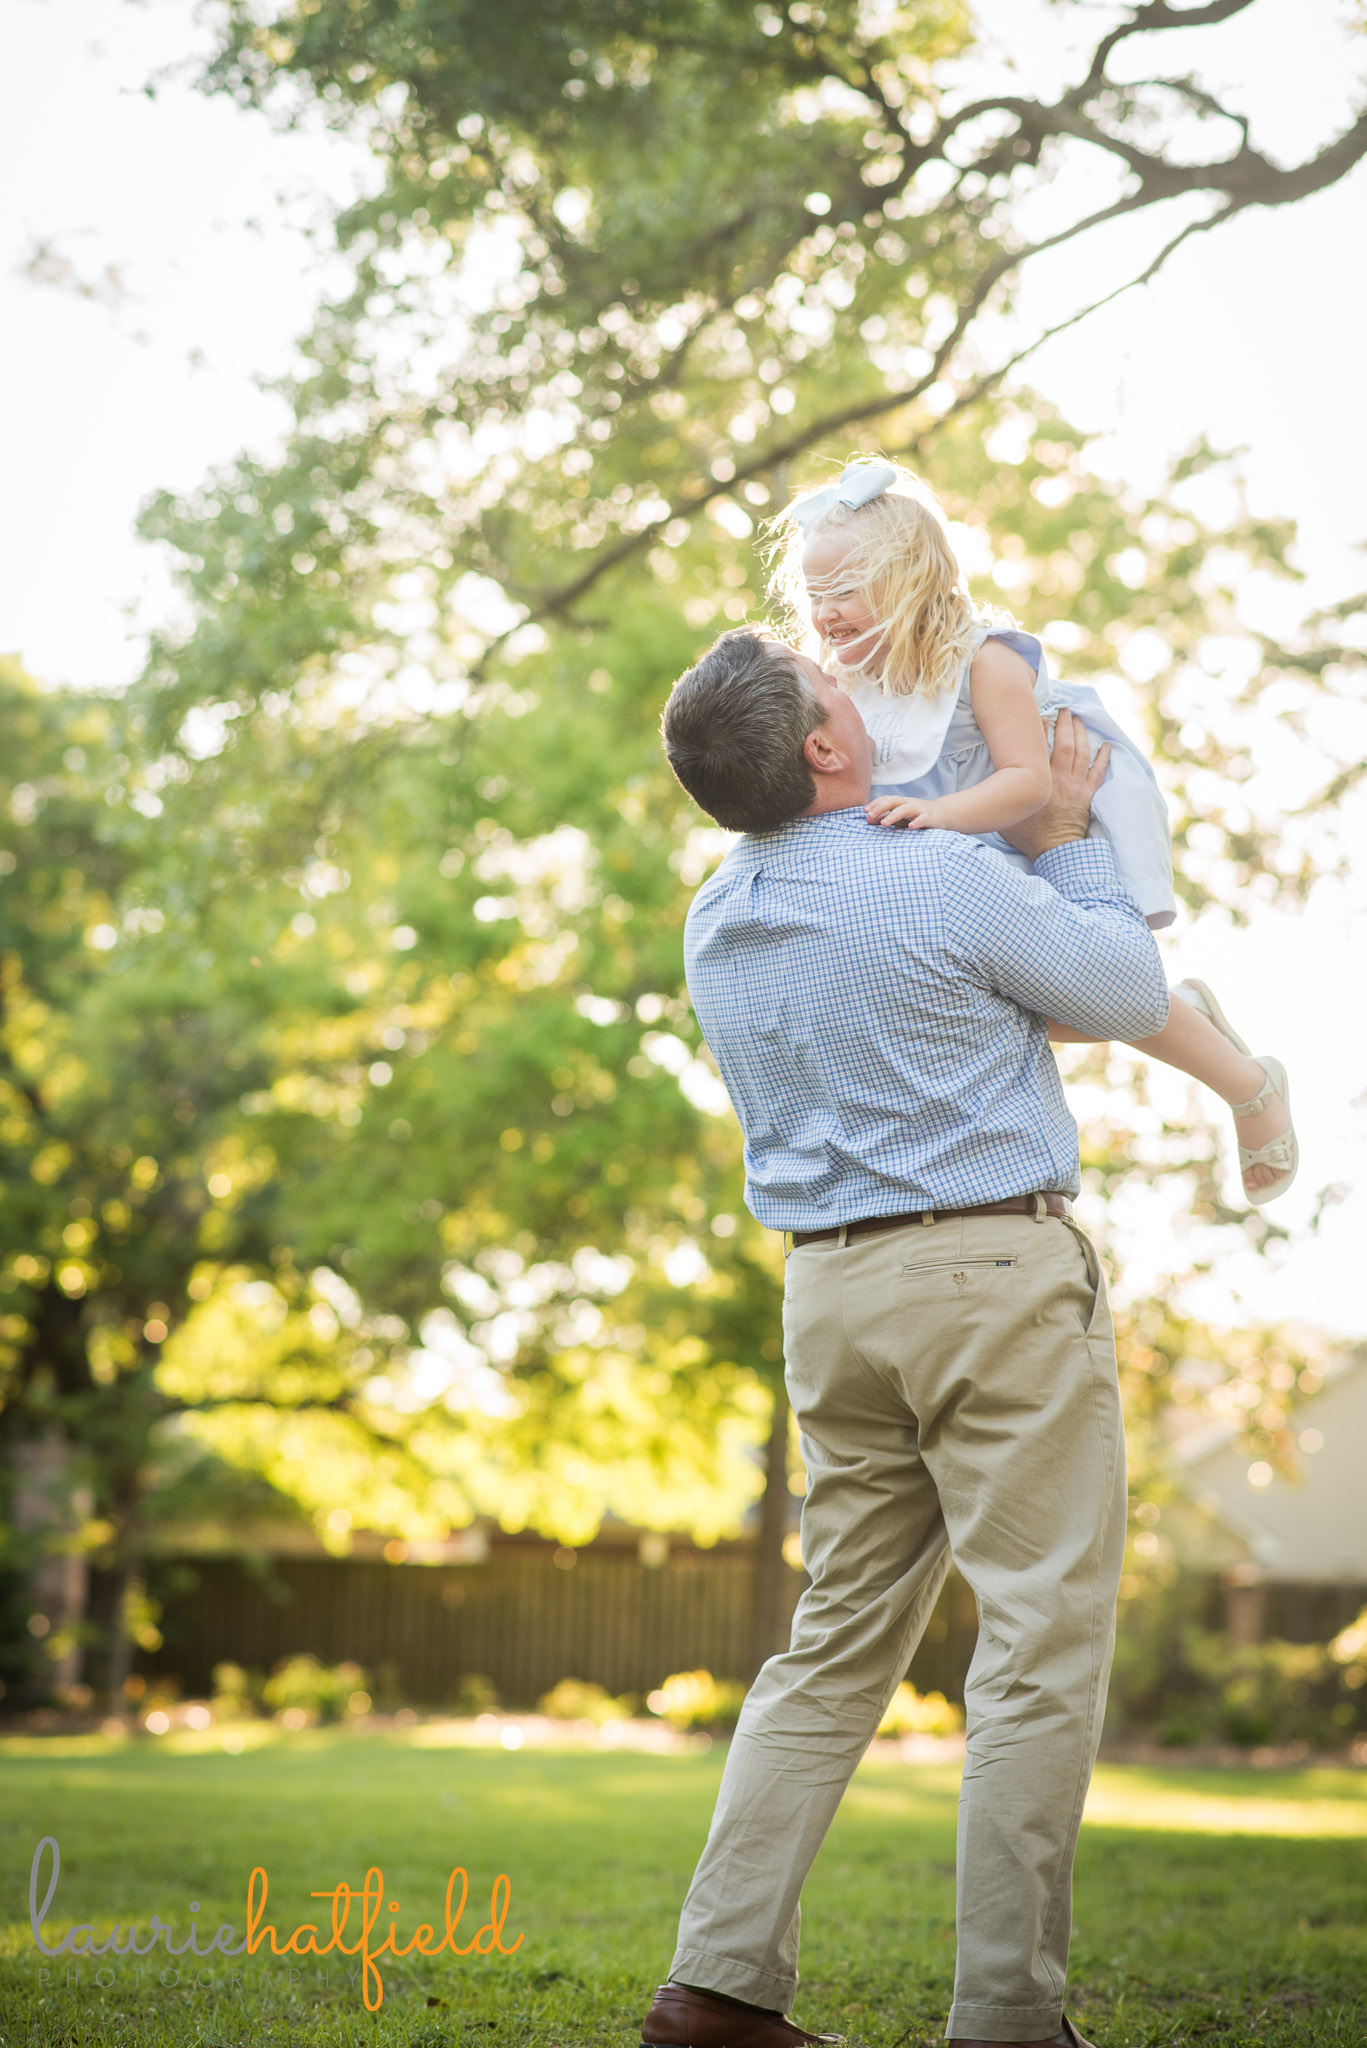 dad twirling little girl in air   Mobile AL family photographer   Laurie Hatfield Photography